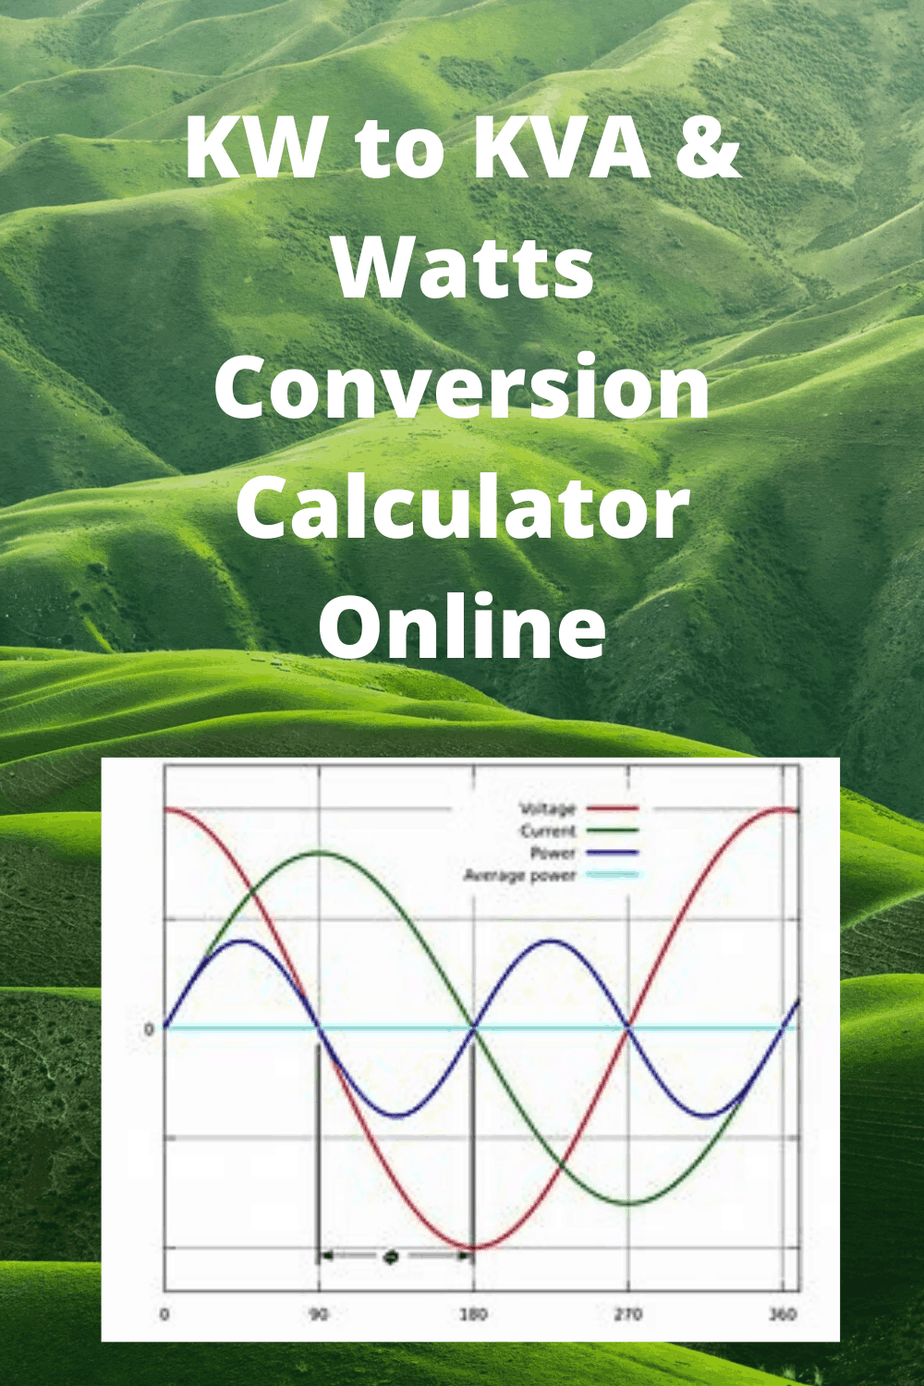 KW to KVA & Watts Conversion Calculator Online